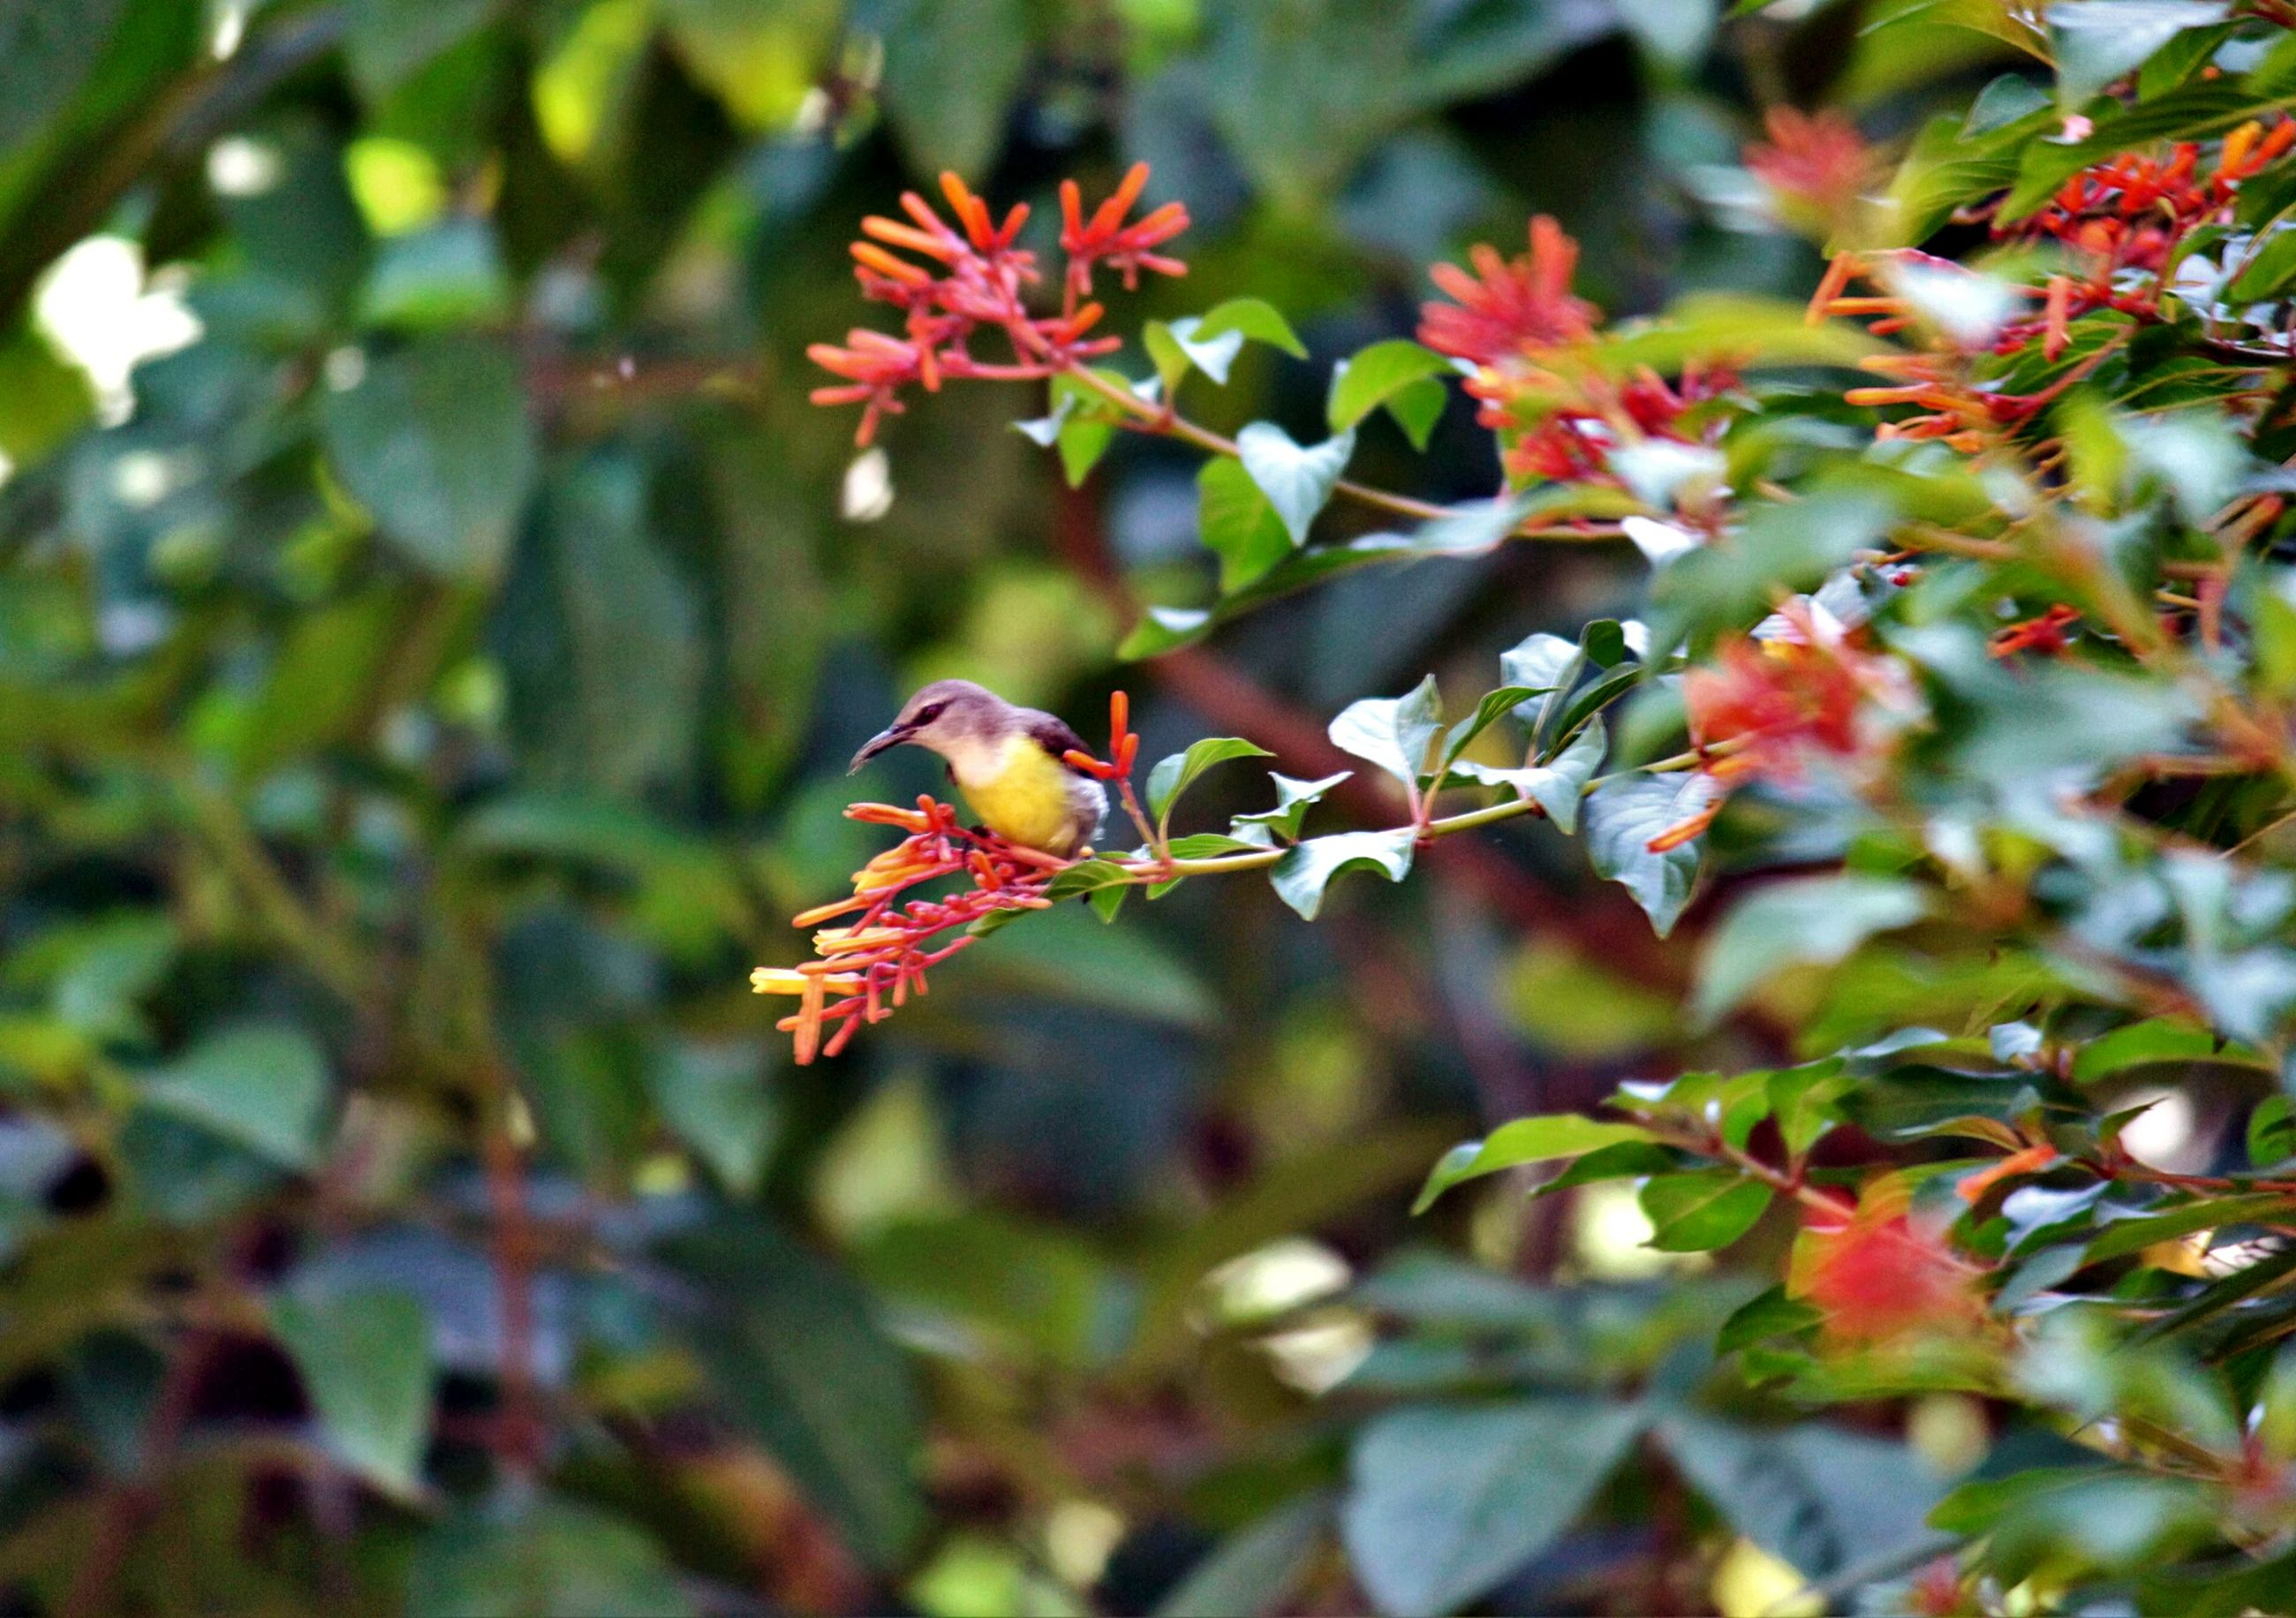 leaf, growth, branch, tree, focus on foreground, nature, close-up, red, beauty in nature, freshness, plant, autumn, twig, season, selective focus, day, outdoors, change, sunlight, no people